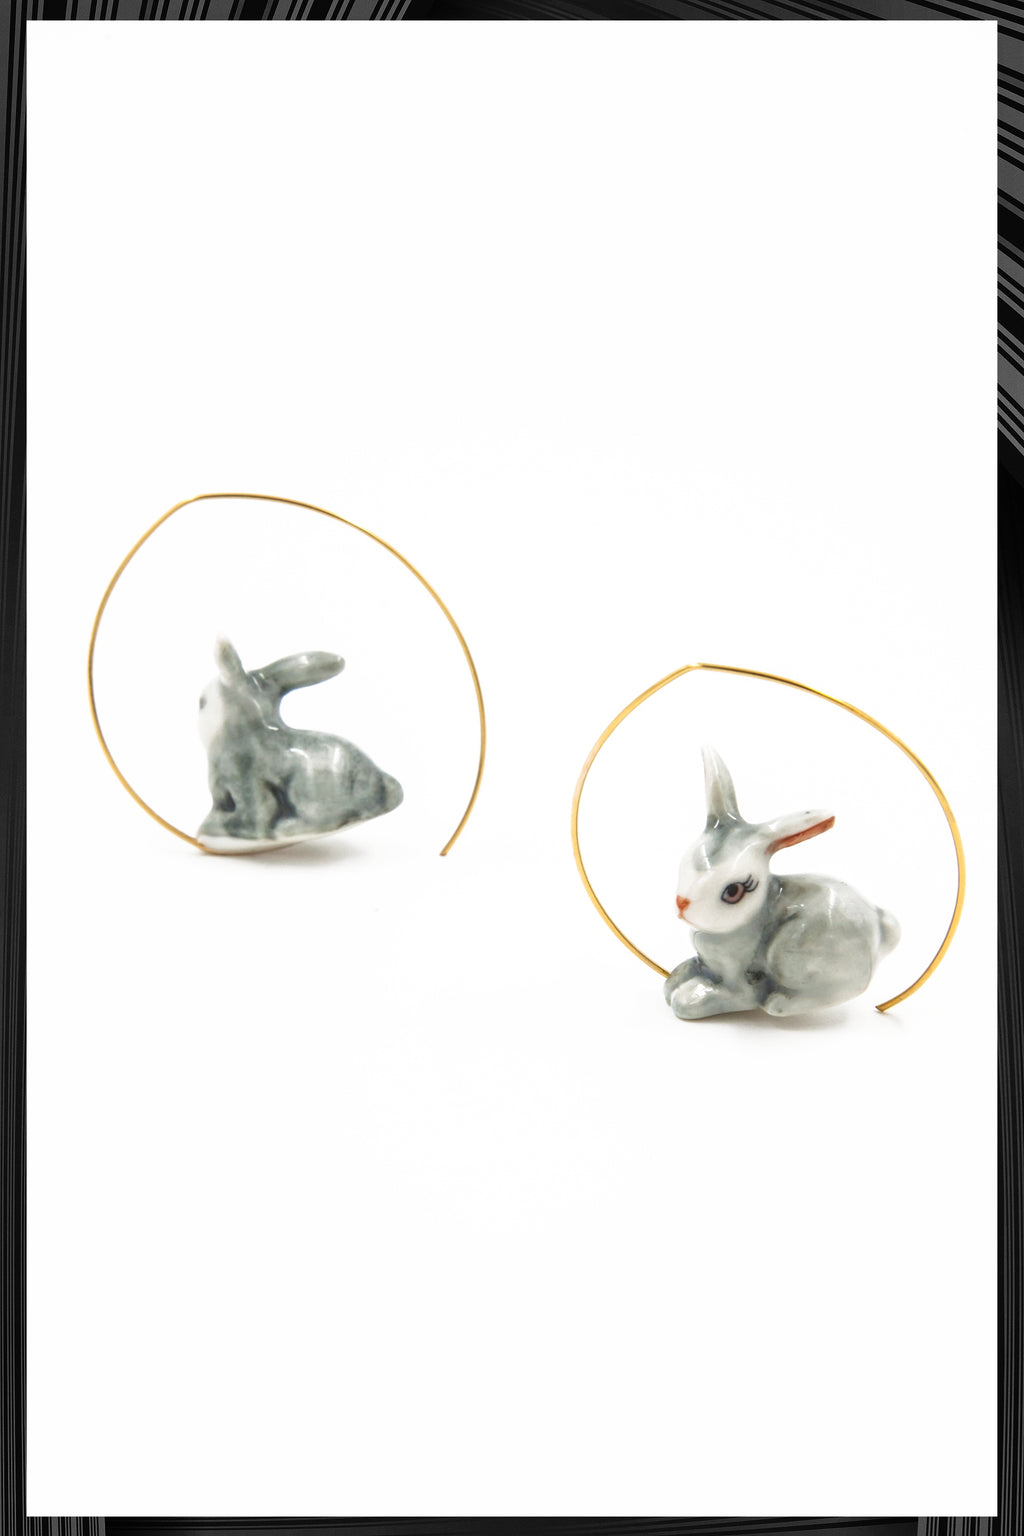 Gray Rabbit Earrings | Free Delivery - Quick Shipping